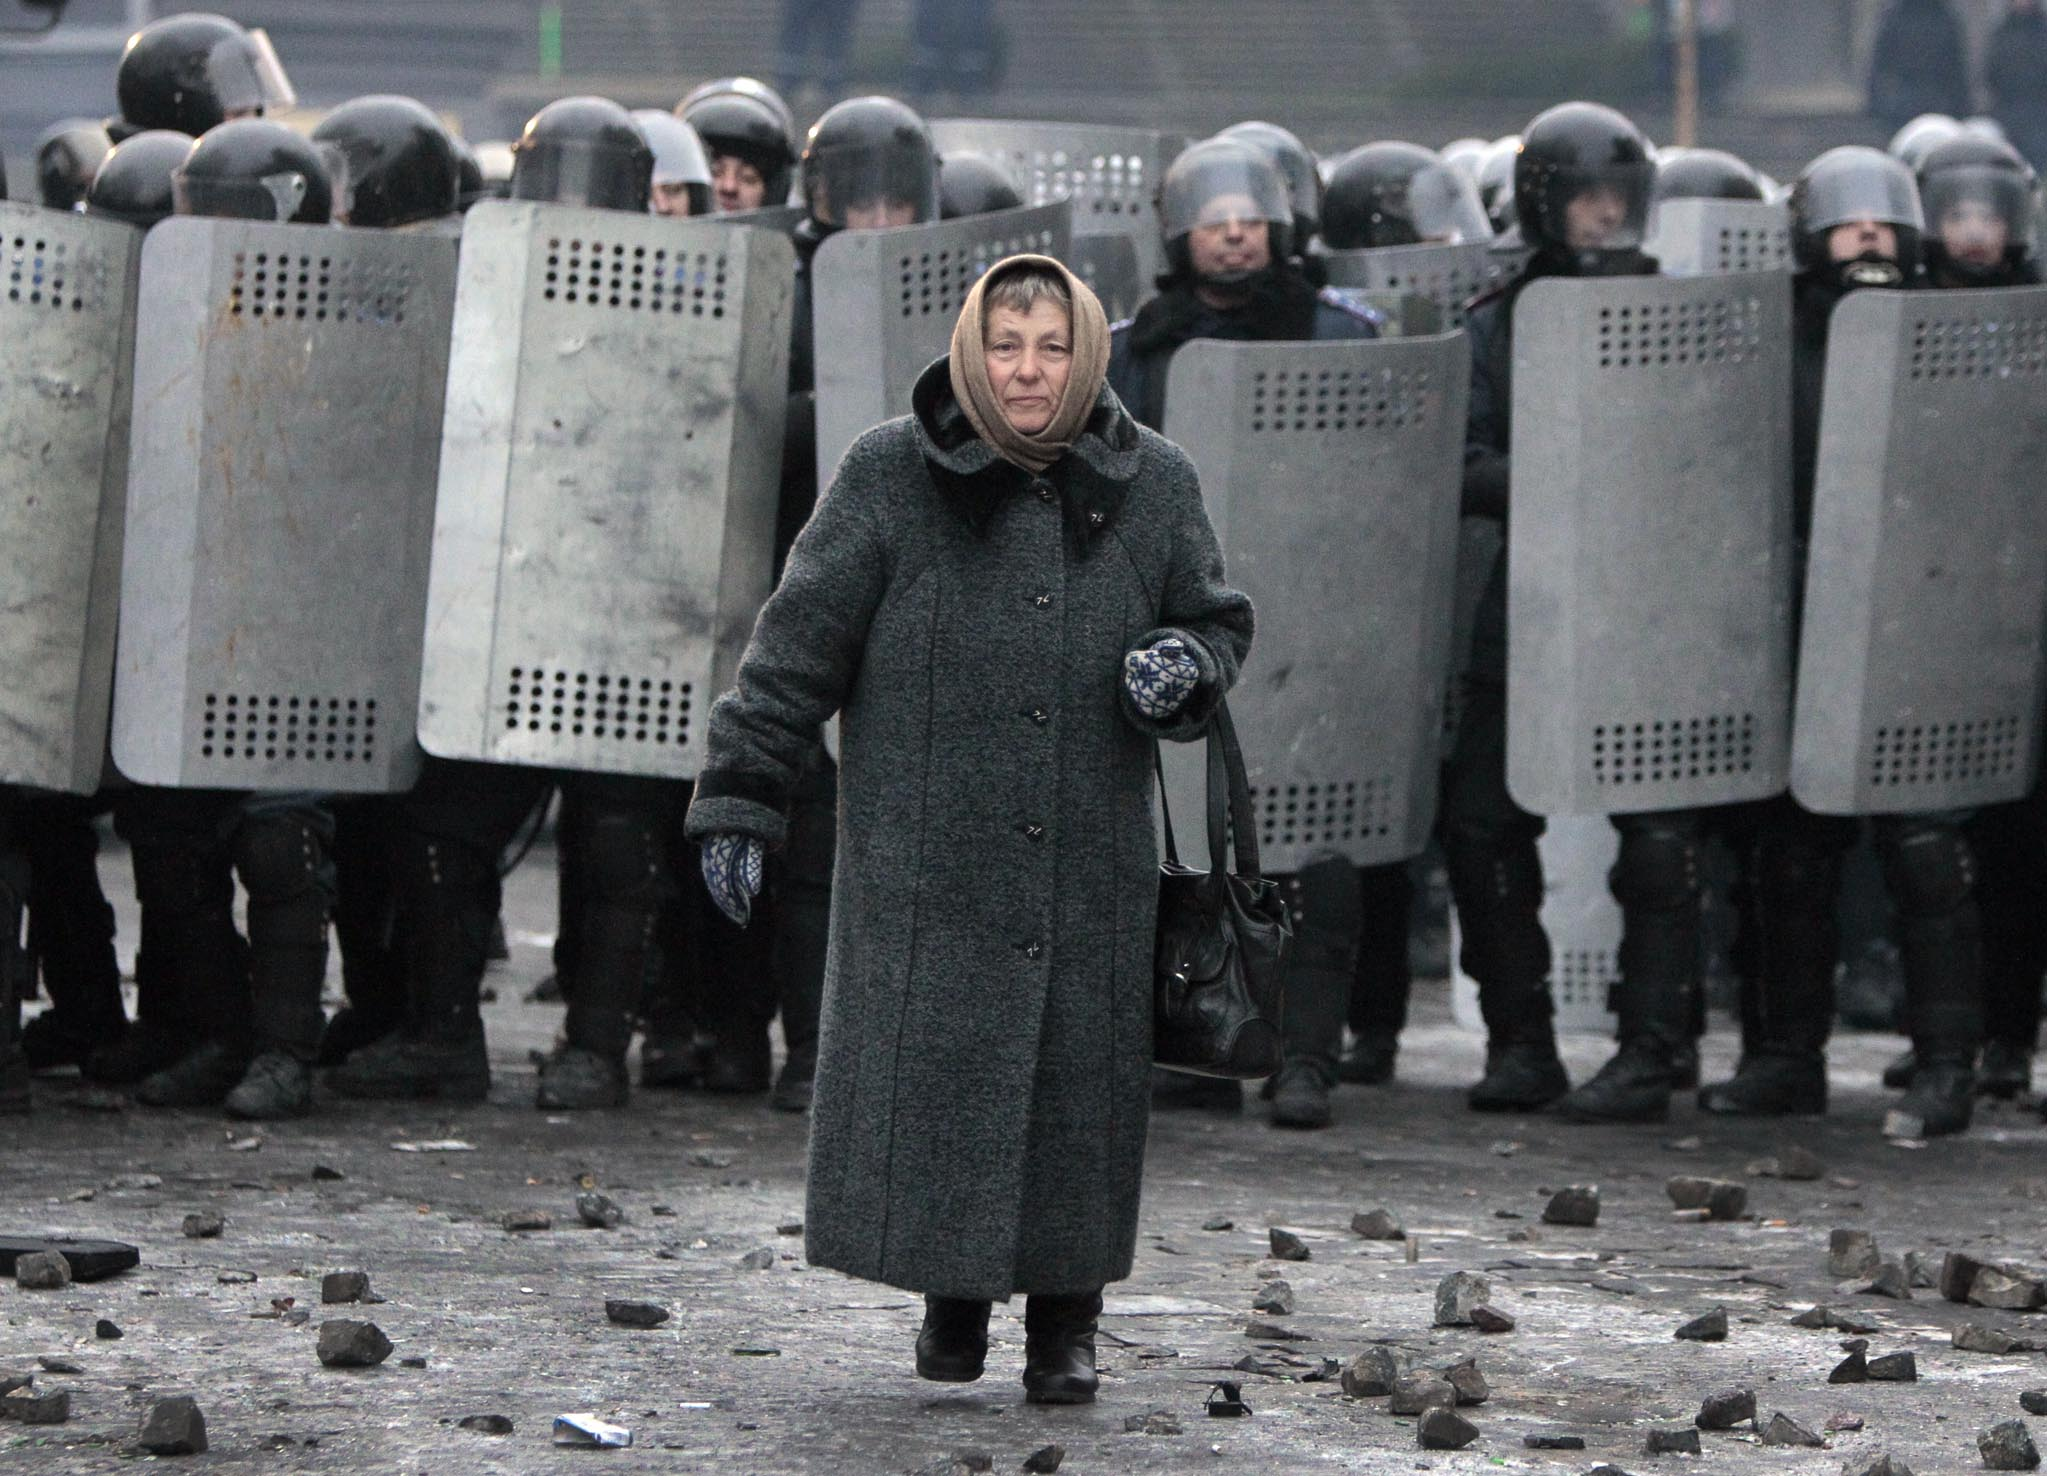 An elderly woman walks from police officers as they block a street during unrest in central Kiev, Ukraine,Tuesday, Jan. 21, 2014. Anti-government protesters